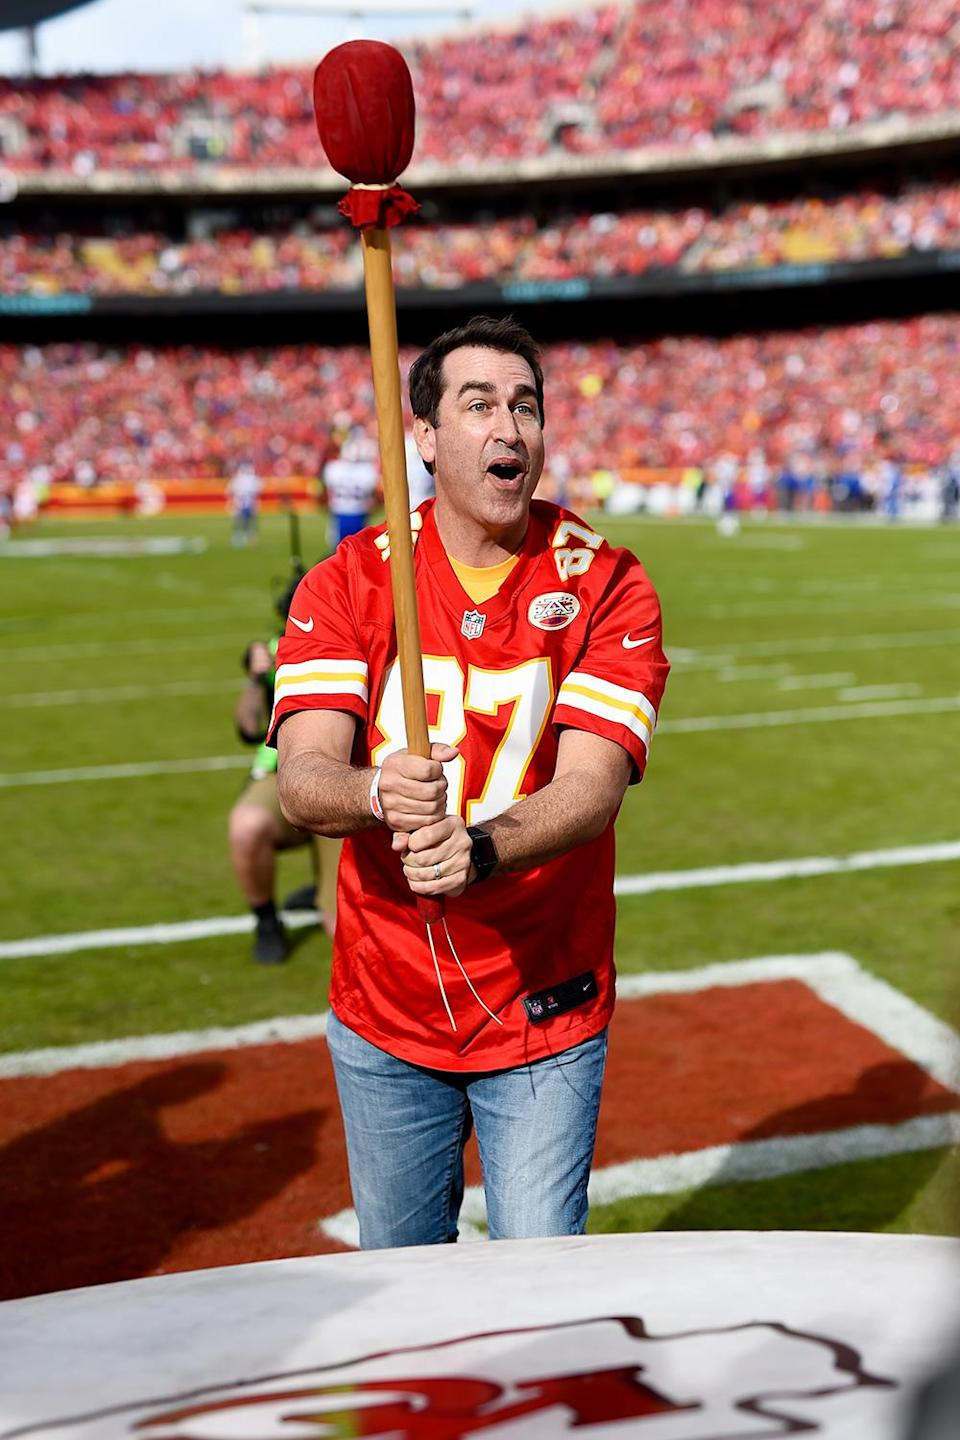 """<p>Rob Riggle's connection to the Chiefs goes back decades: he grew up in Kansas, eventually attending University of Kansas. He and some of the team's other superstar fans (namely, Rudd) <a href=""""https://www.chiefs.com/video/chiefs-kingdom-rudd-and-riggle-act-2-14113130"""" rel=""""nofollow noopener"""" target=""""_blank"""" data-ylk=""""slk:frequently appear in media for the team."""" class=""""link rapid-noclick-resp"""">frequently appear in media for the team.</a></p>"""